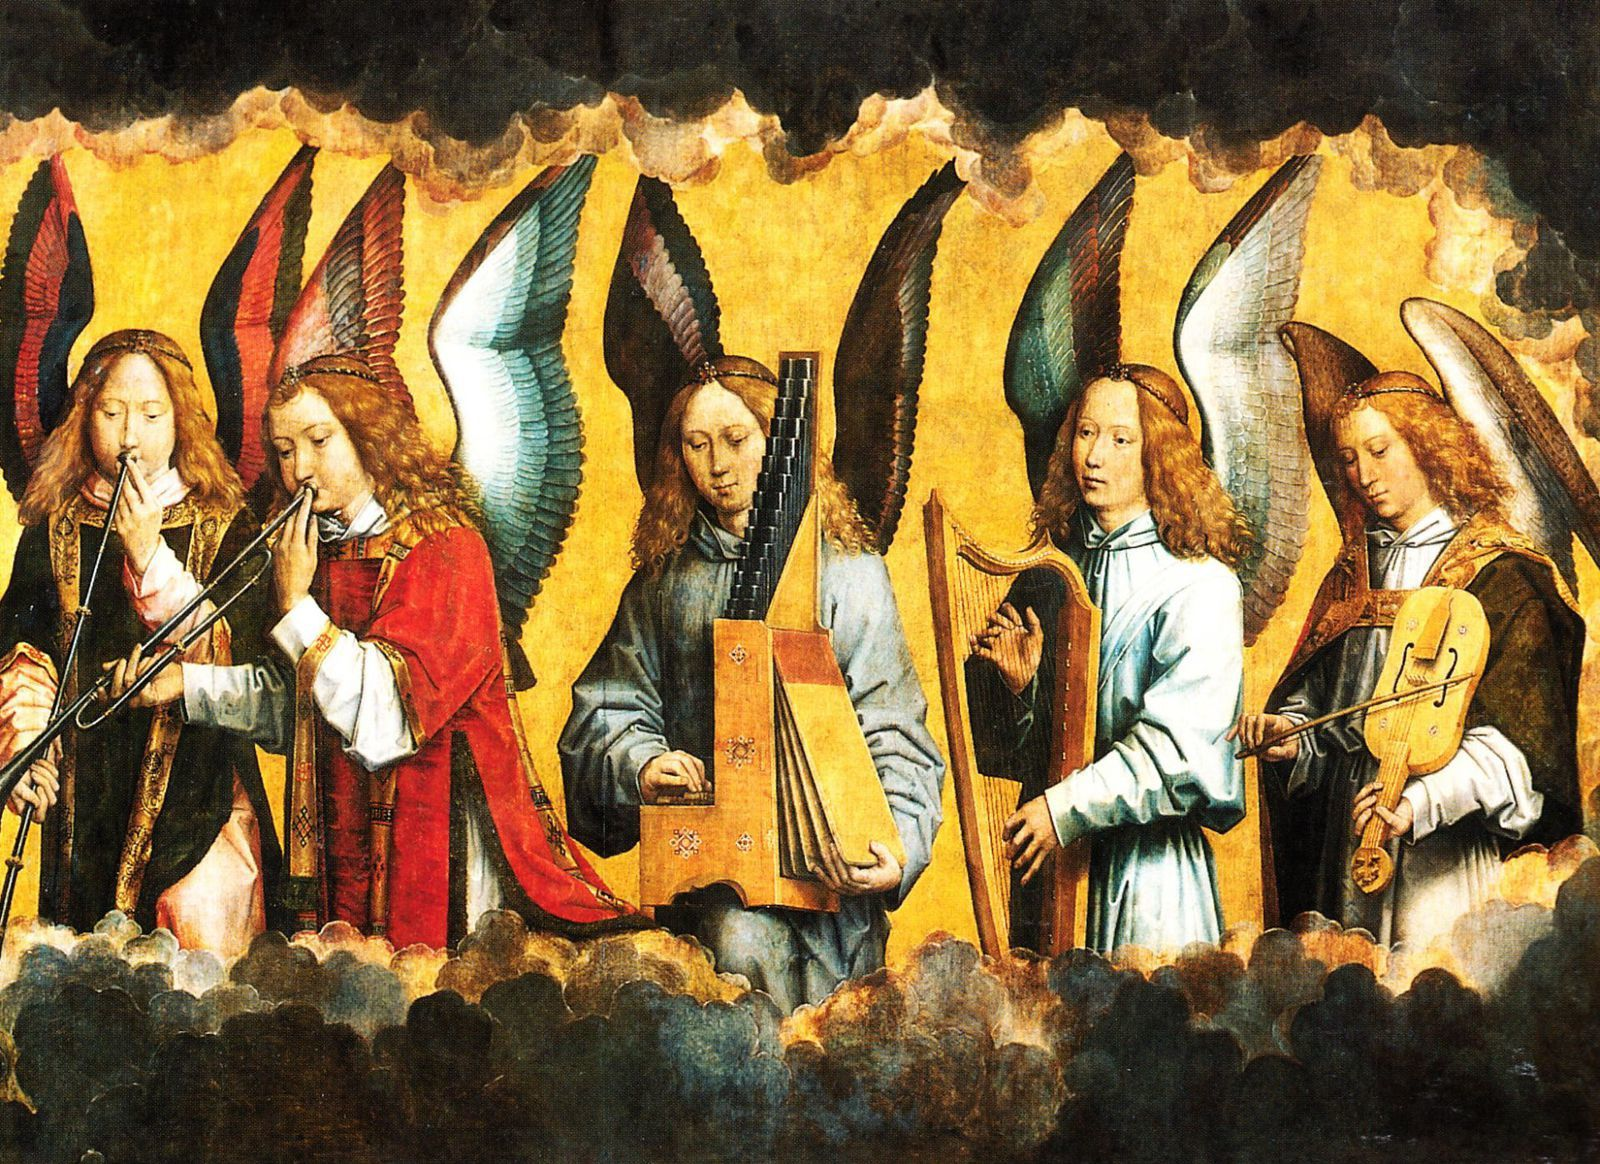 Les anges musiciens, Hans Memling, 1435/1484